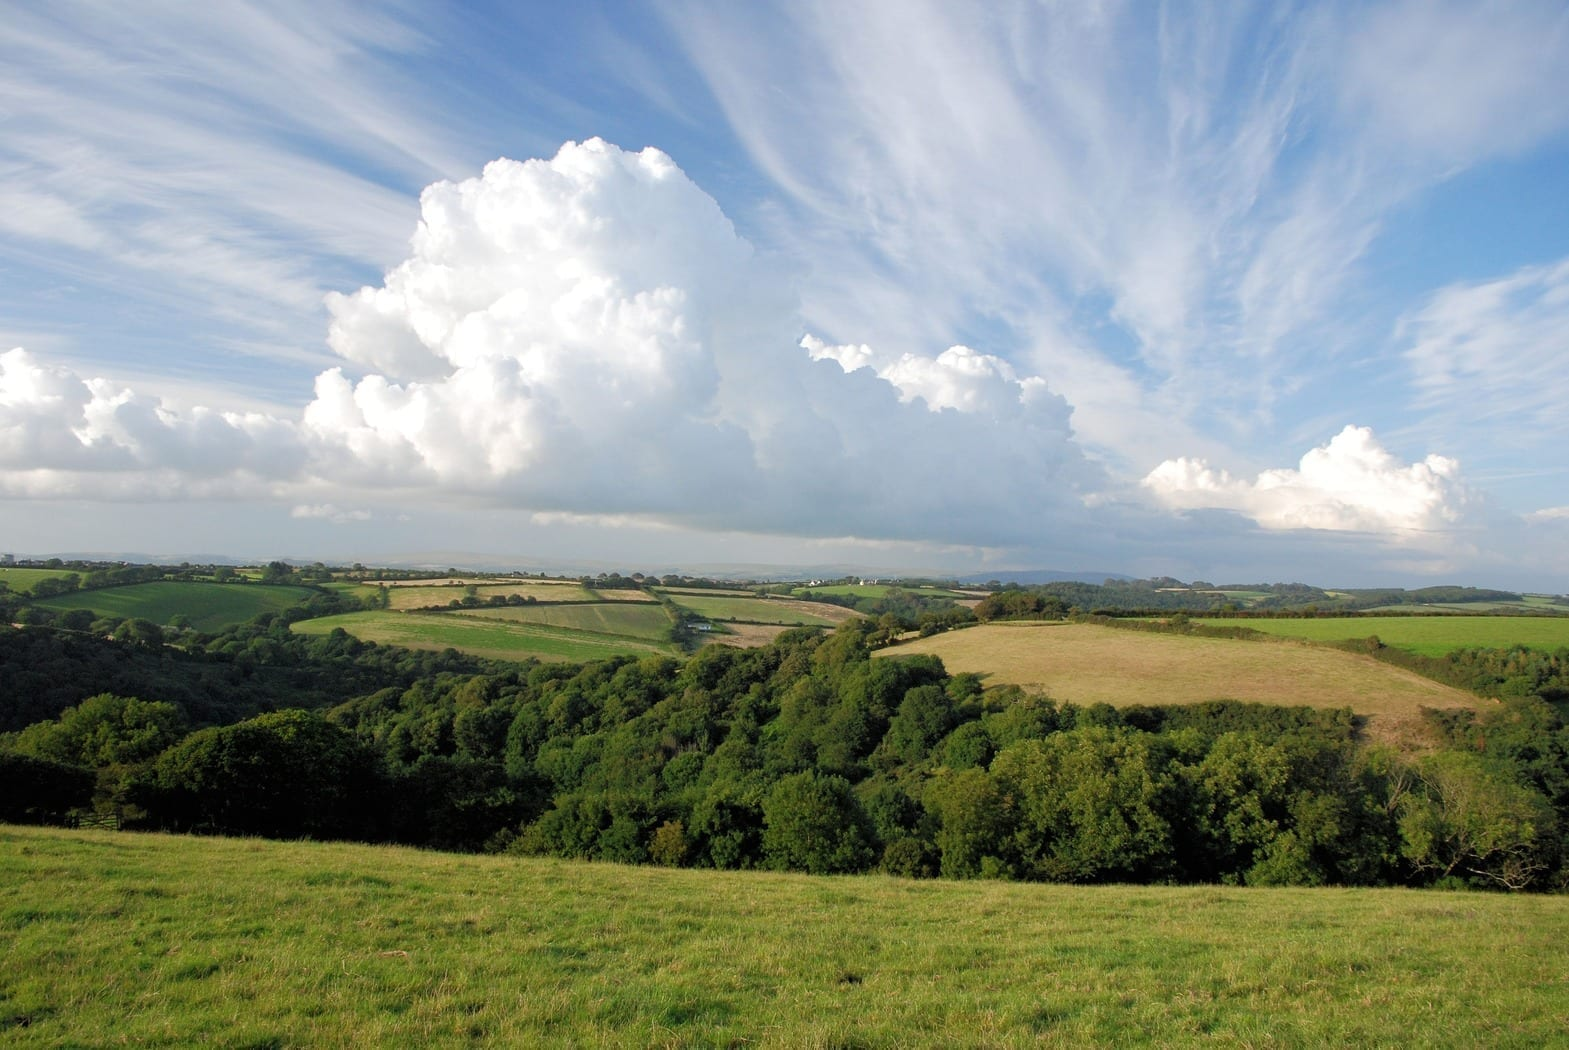 Farmland with woods and puffy clouds above, photo credit: pxhere